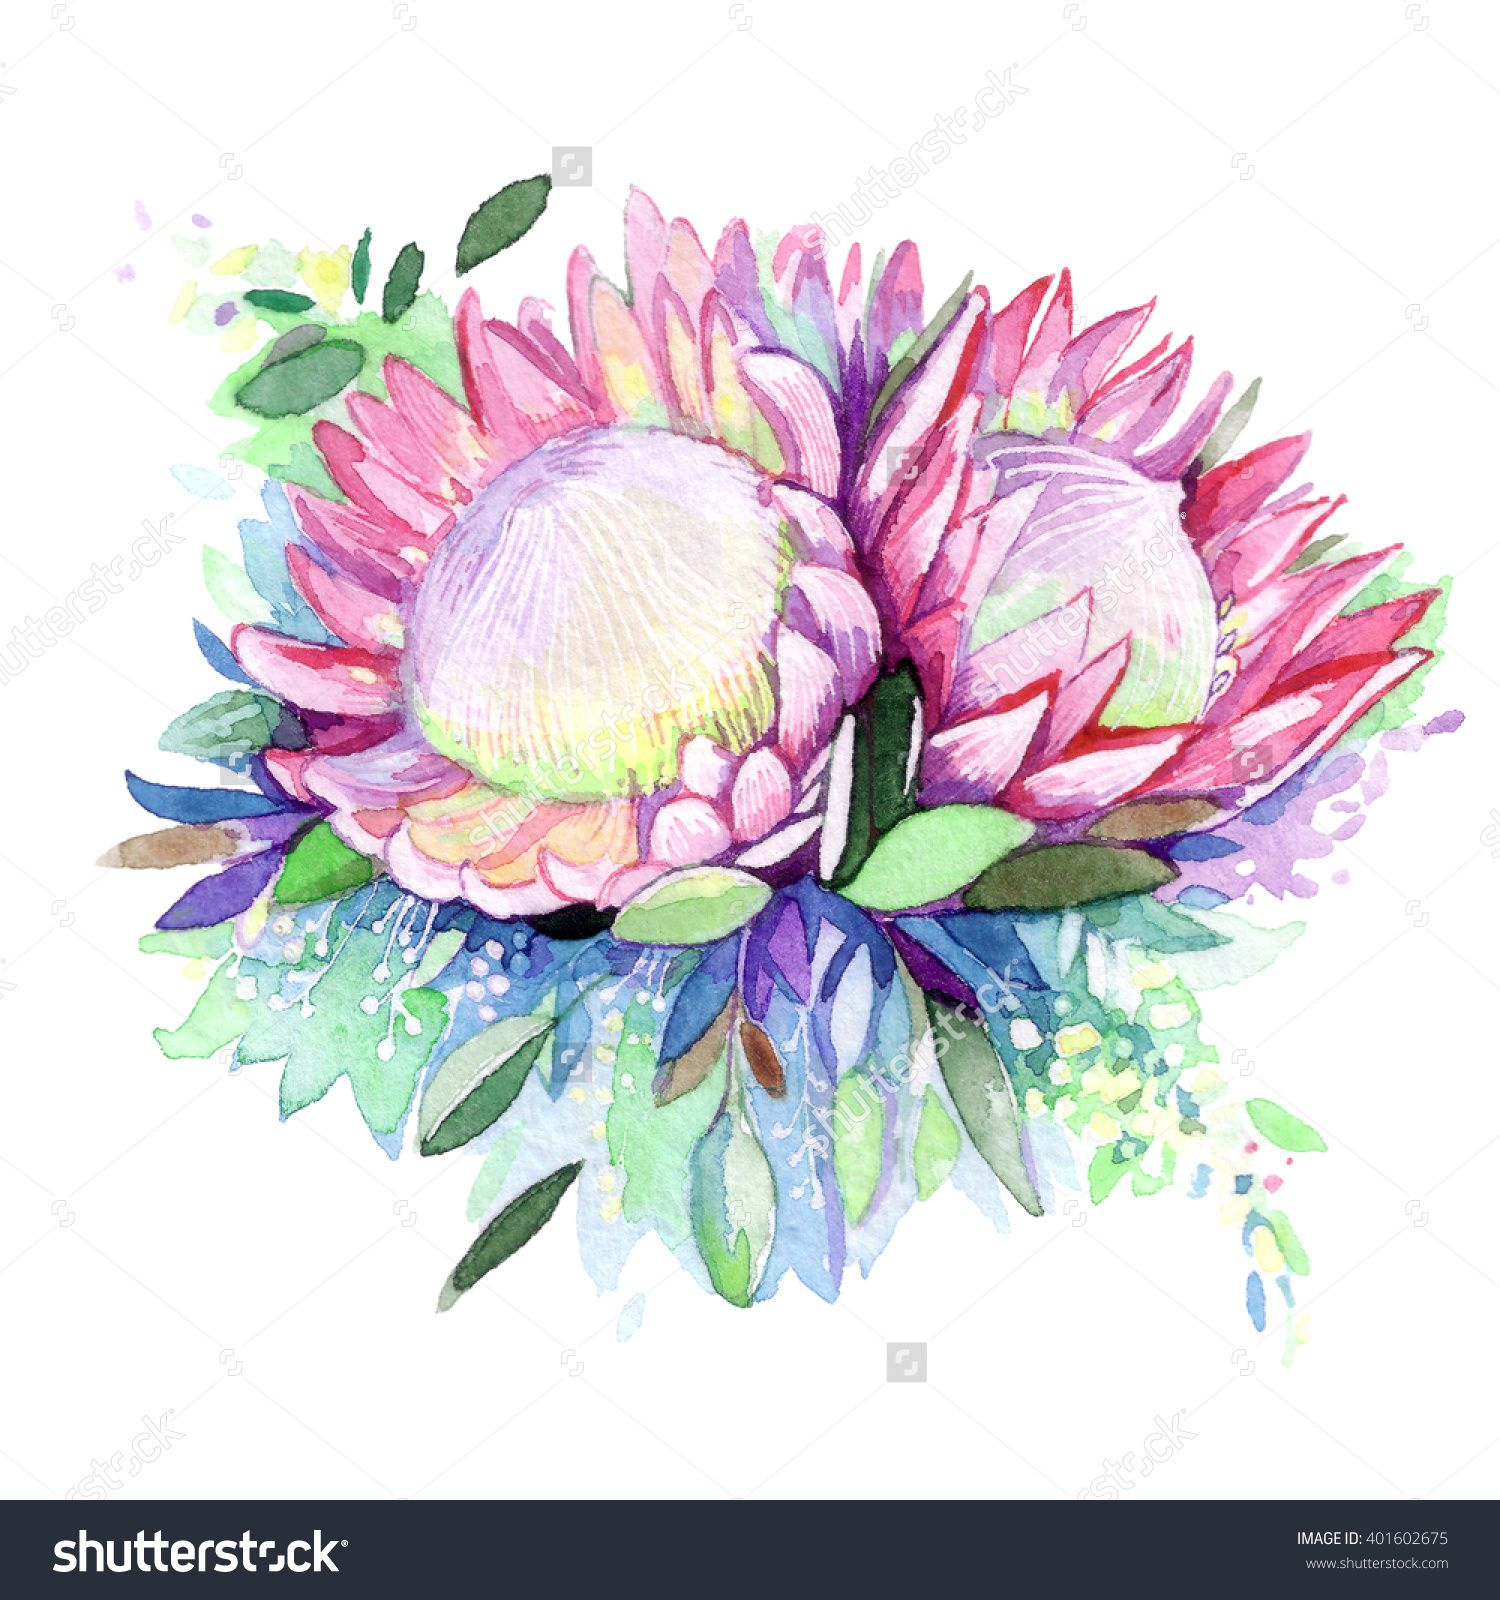 High Quality Watercolor Painted Protea Bouquet Hand Painted Purple Leaves Pink Flowers Protea Flower Her Watercolor Illustration Protea Flower Illustration